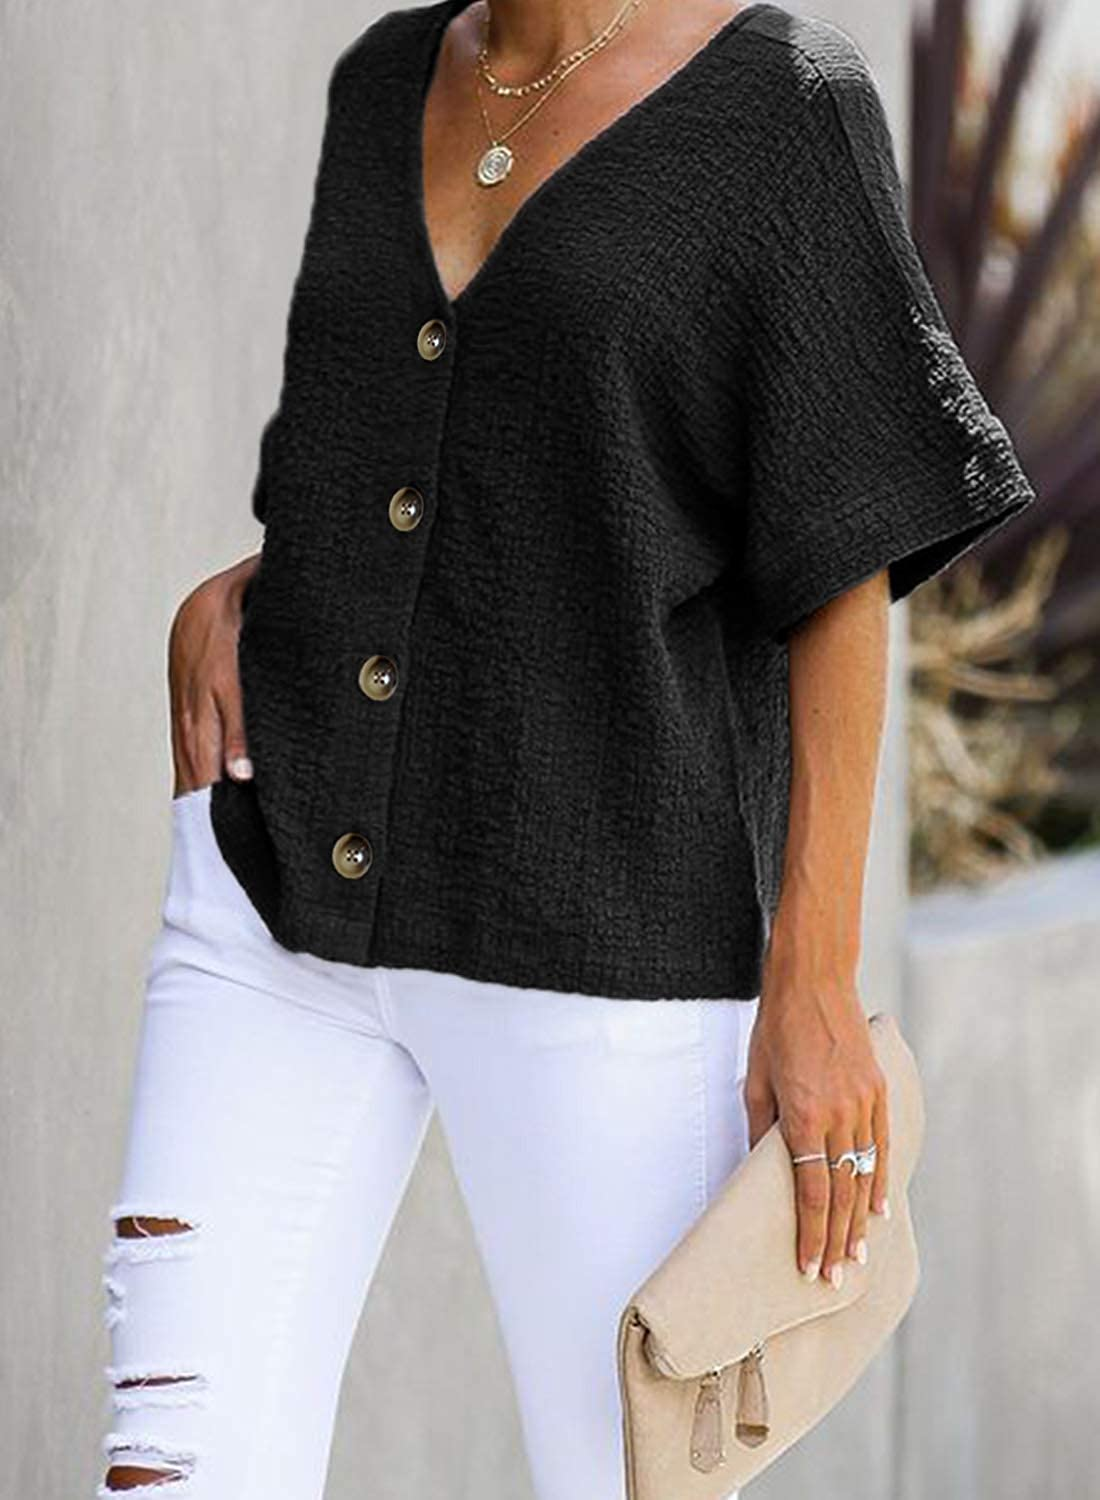 BLENCOT Women's Button Down Short Sleeve V Neck Back Shirts Casual Loose Blouse Tops